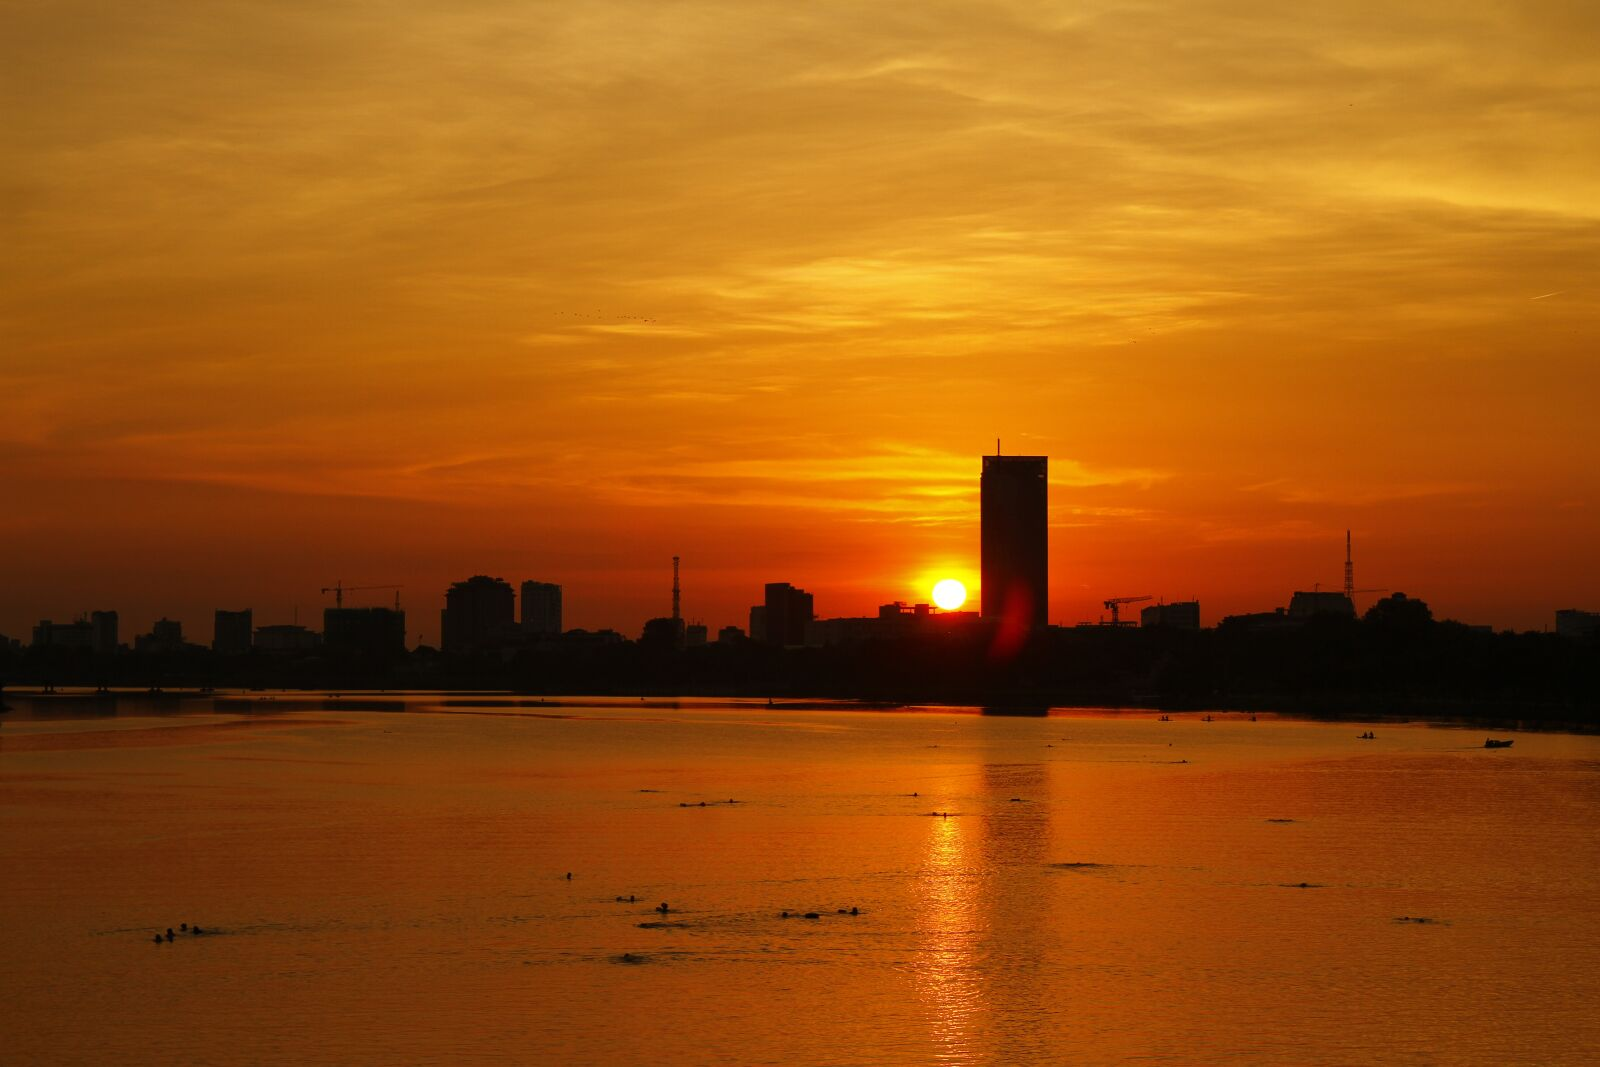 """Canon EOS 7D sample photo. """"Sunset, river, silhouette"""" photography"""